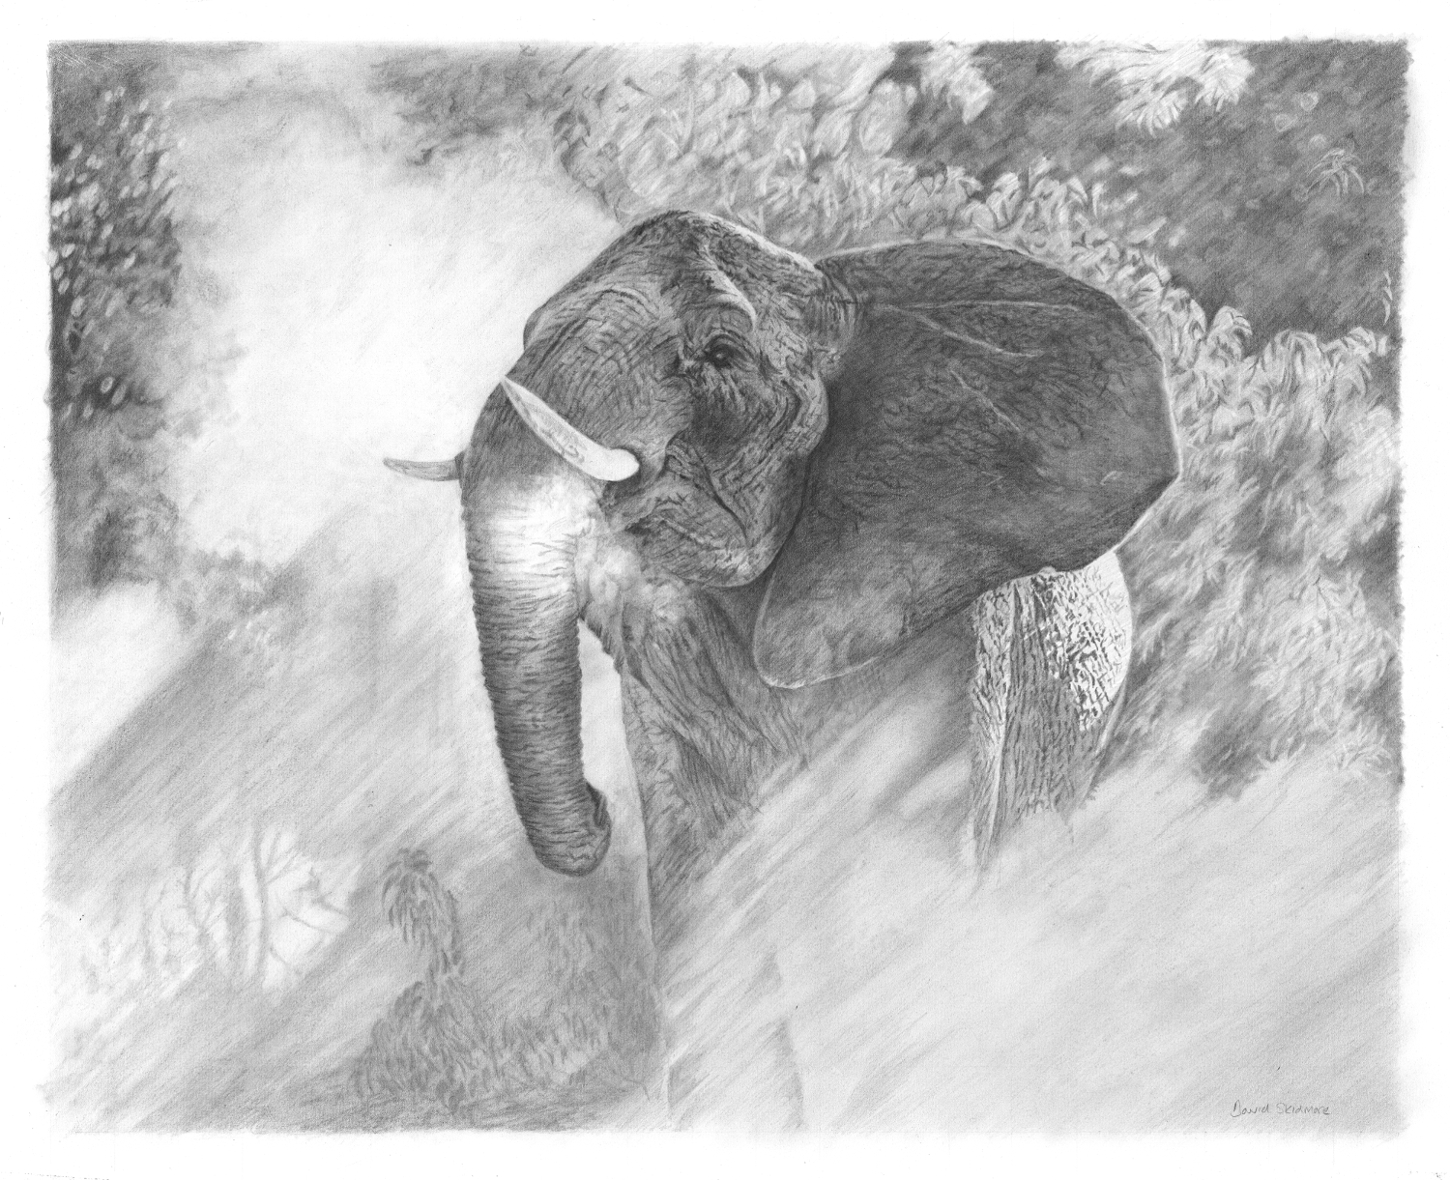 In the spotlight By David Skidmore – 62 x 51cm – graphite pencil on Fabriano Artistico hot press paper - £1250